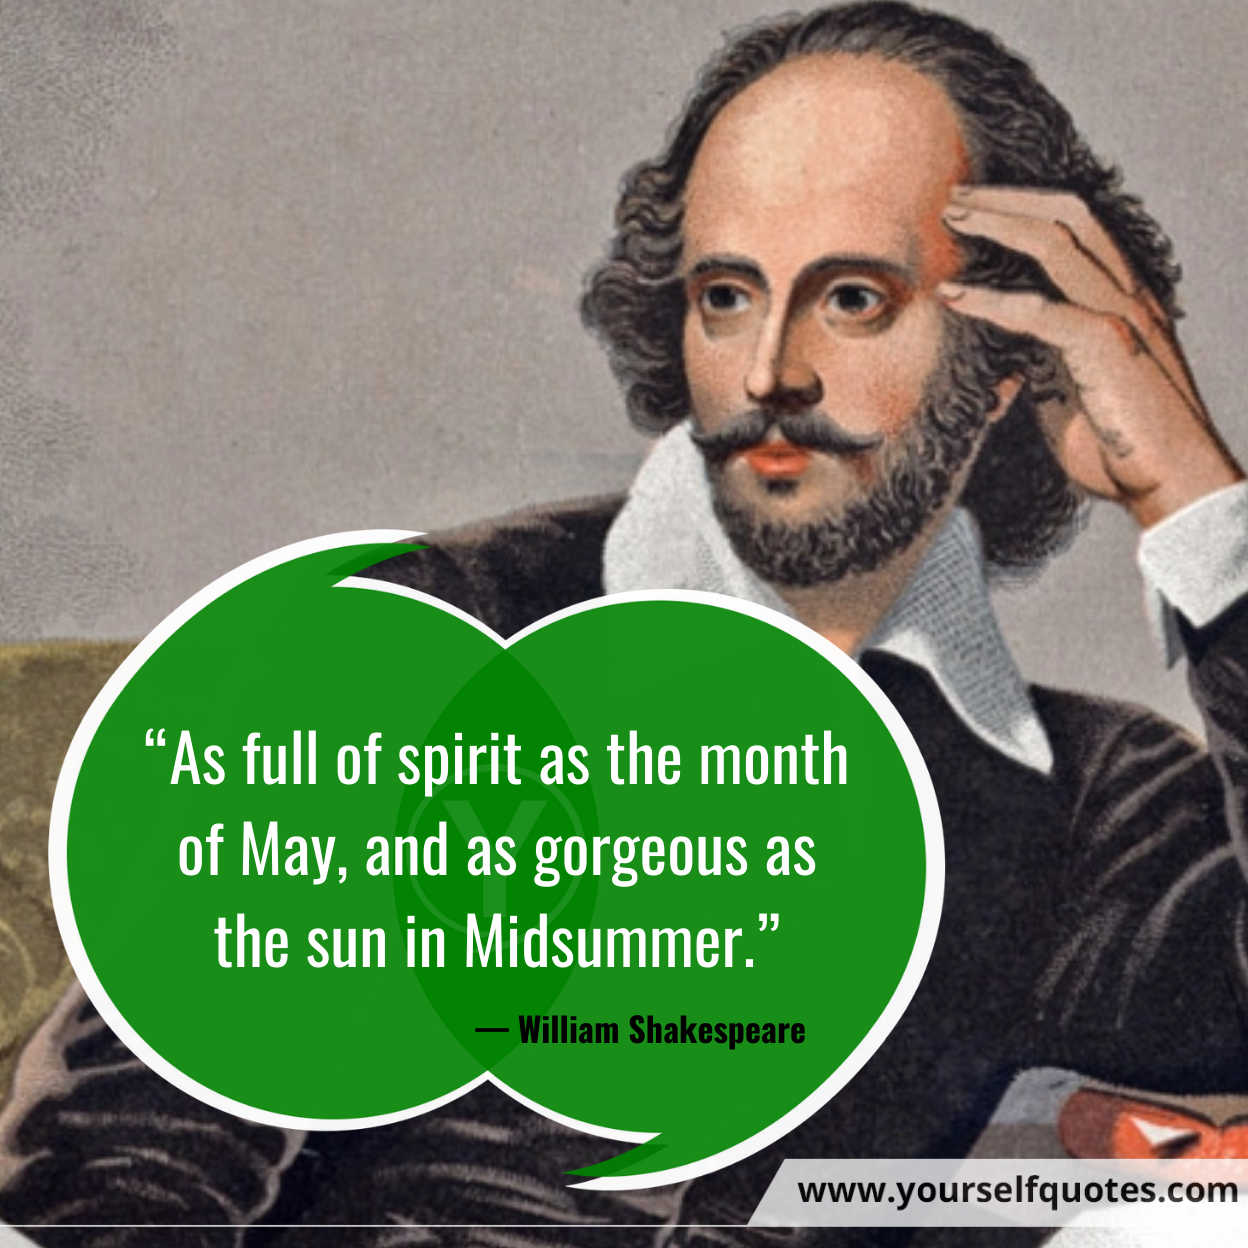 Kutipan Hari Buruh oleh William Shakespeare